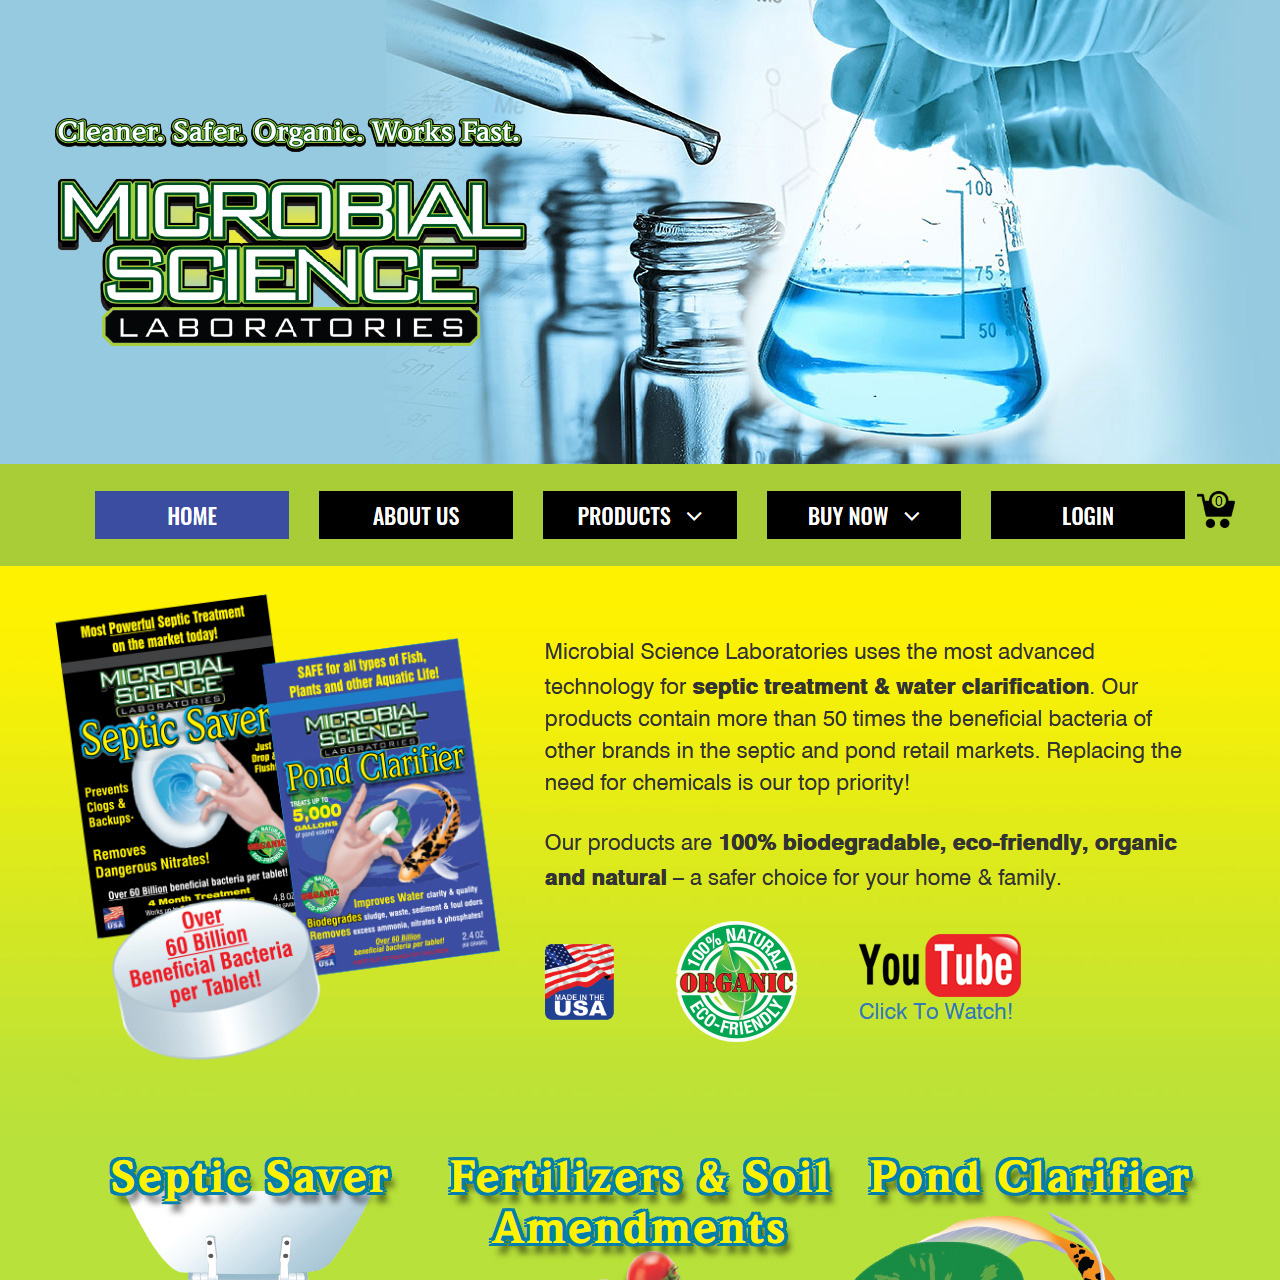 Microbial Science Laboratories septic treatment website design